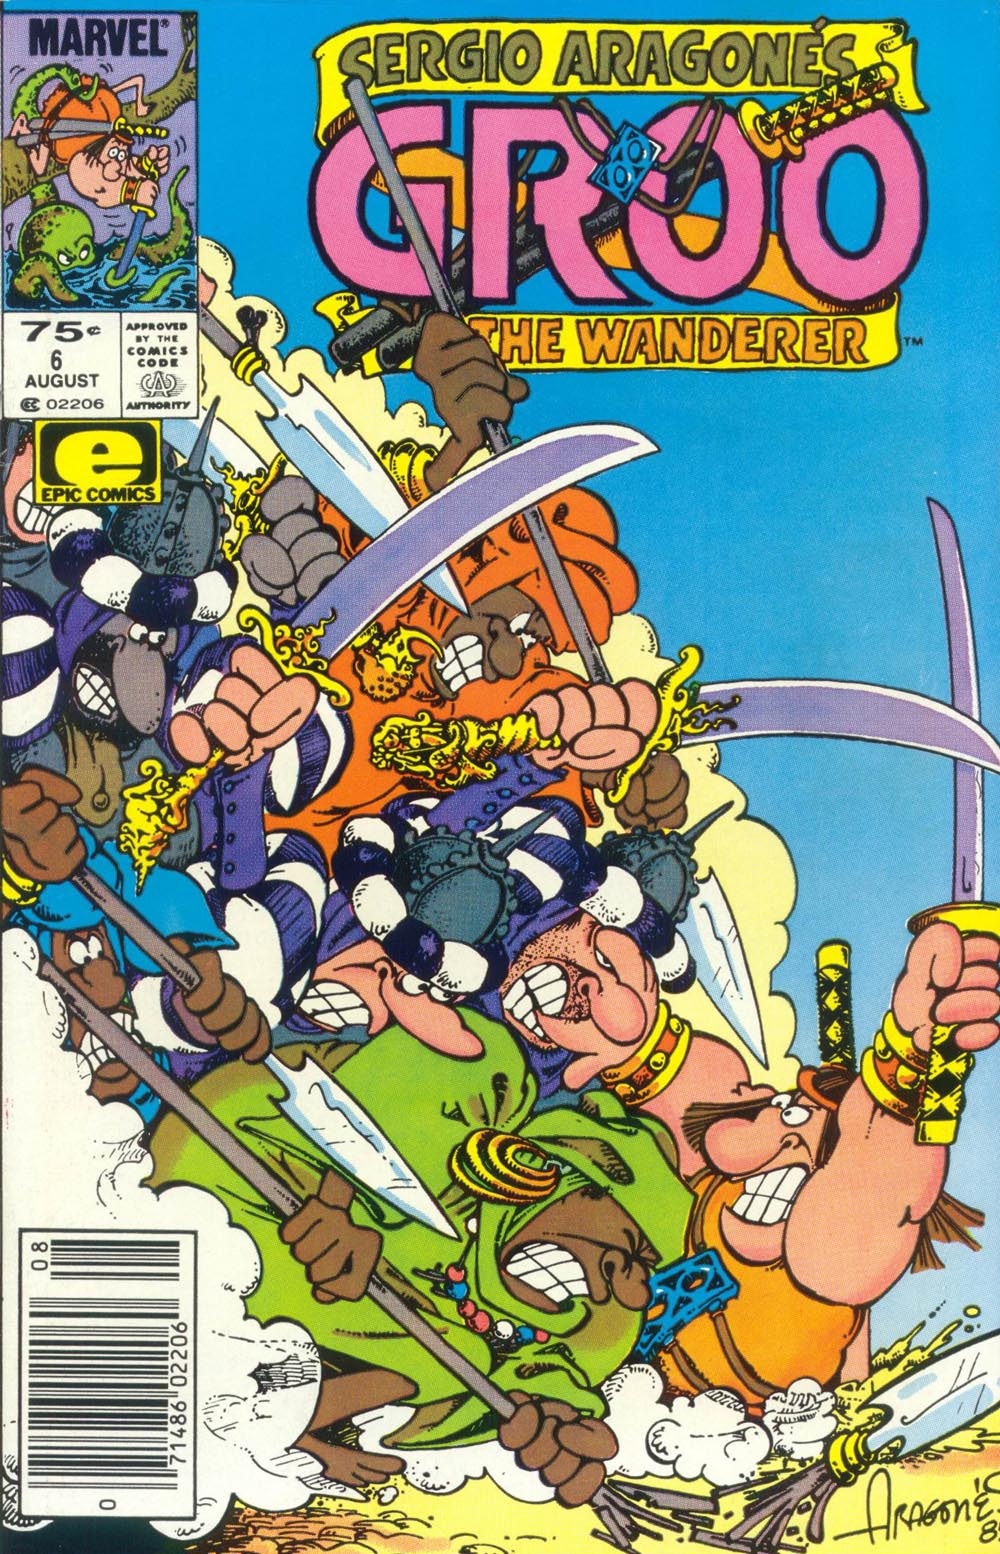 Read online Sergio Aragonés Groo the Wanderer comic -  Issue #6 - 1